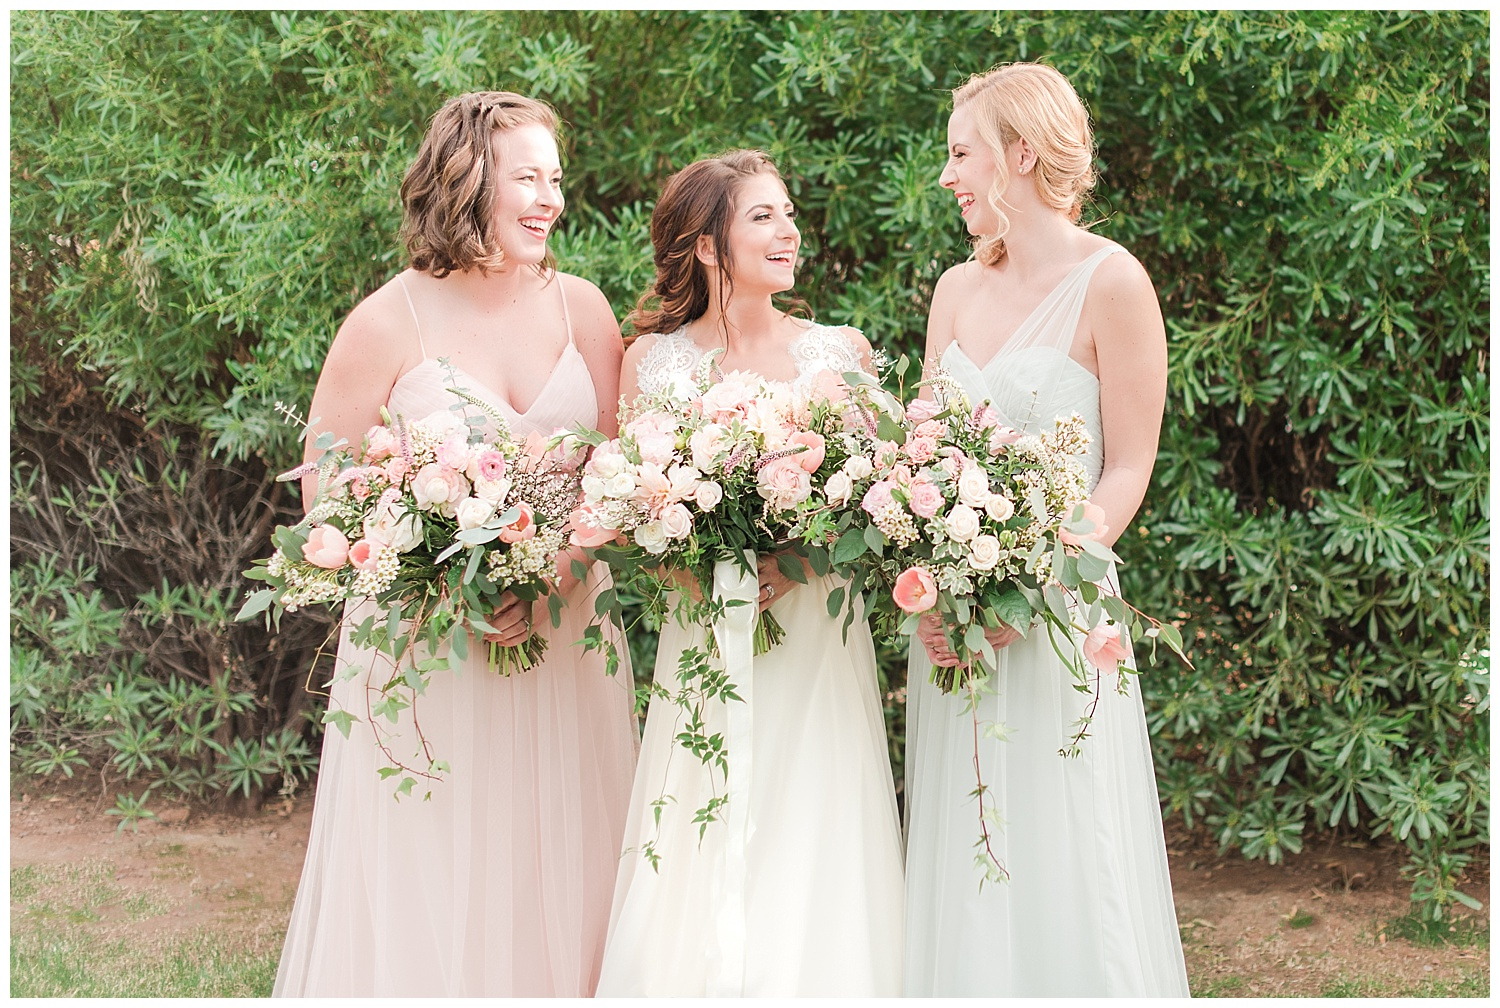 Bridesmaids and bride Jessica wearing dresses provided by Bella Lily Bridal in Phoenix and holding bouquets made with love by Garden Gate Flowers, photographed at Gather Estate in Mesa, Arizona.